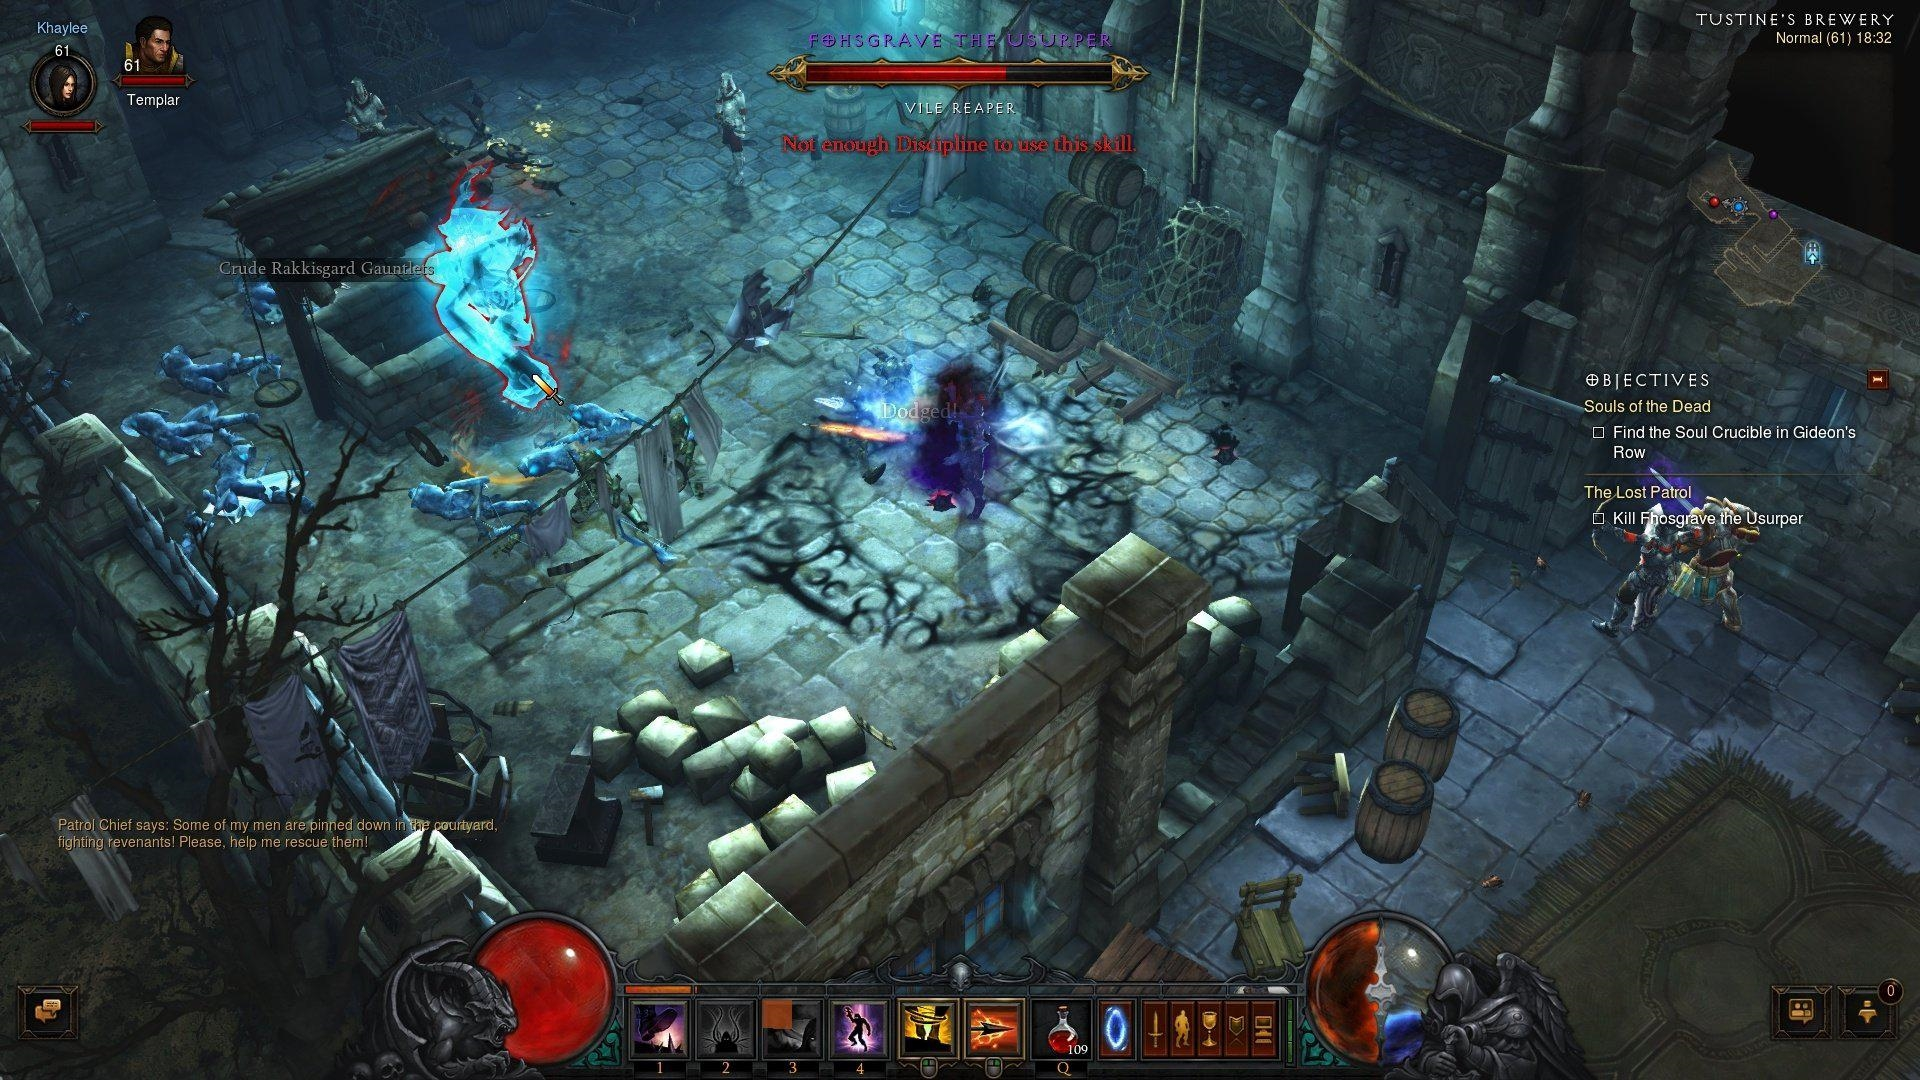 Diablo 3 Reaper Of Souls Console Edition Receiving Patch 210 Very Soon VG247